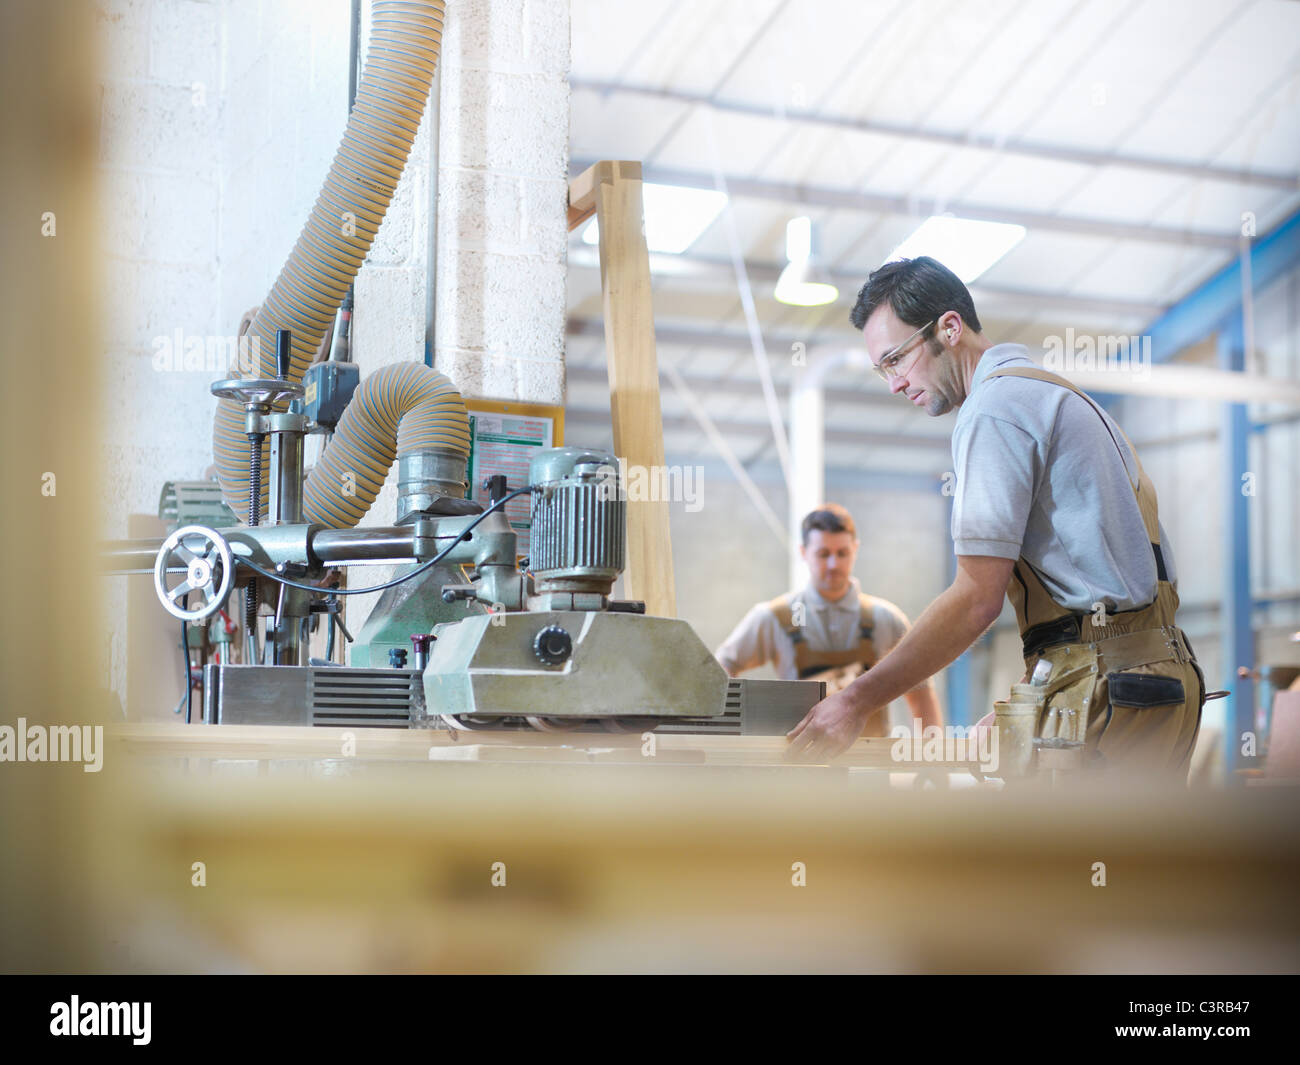 Woodworkers with planing machine - Stock Image